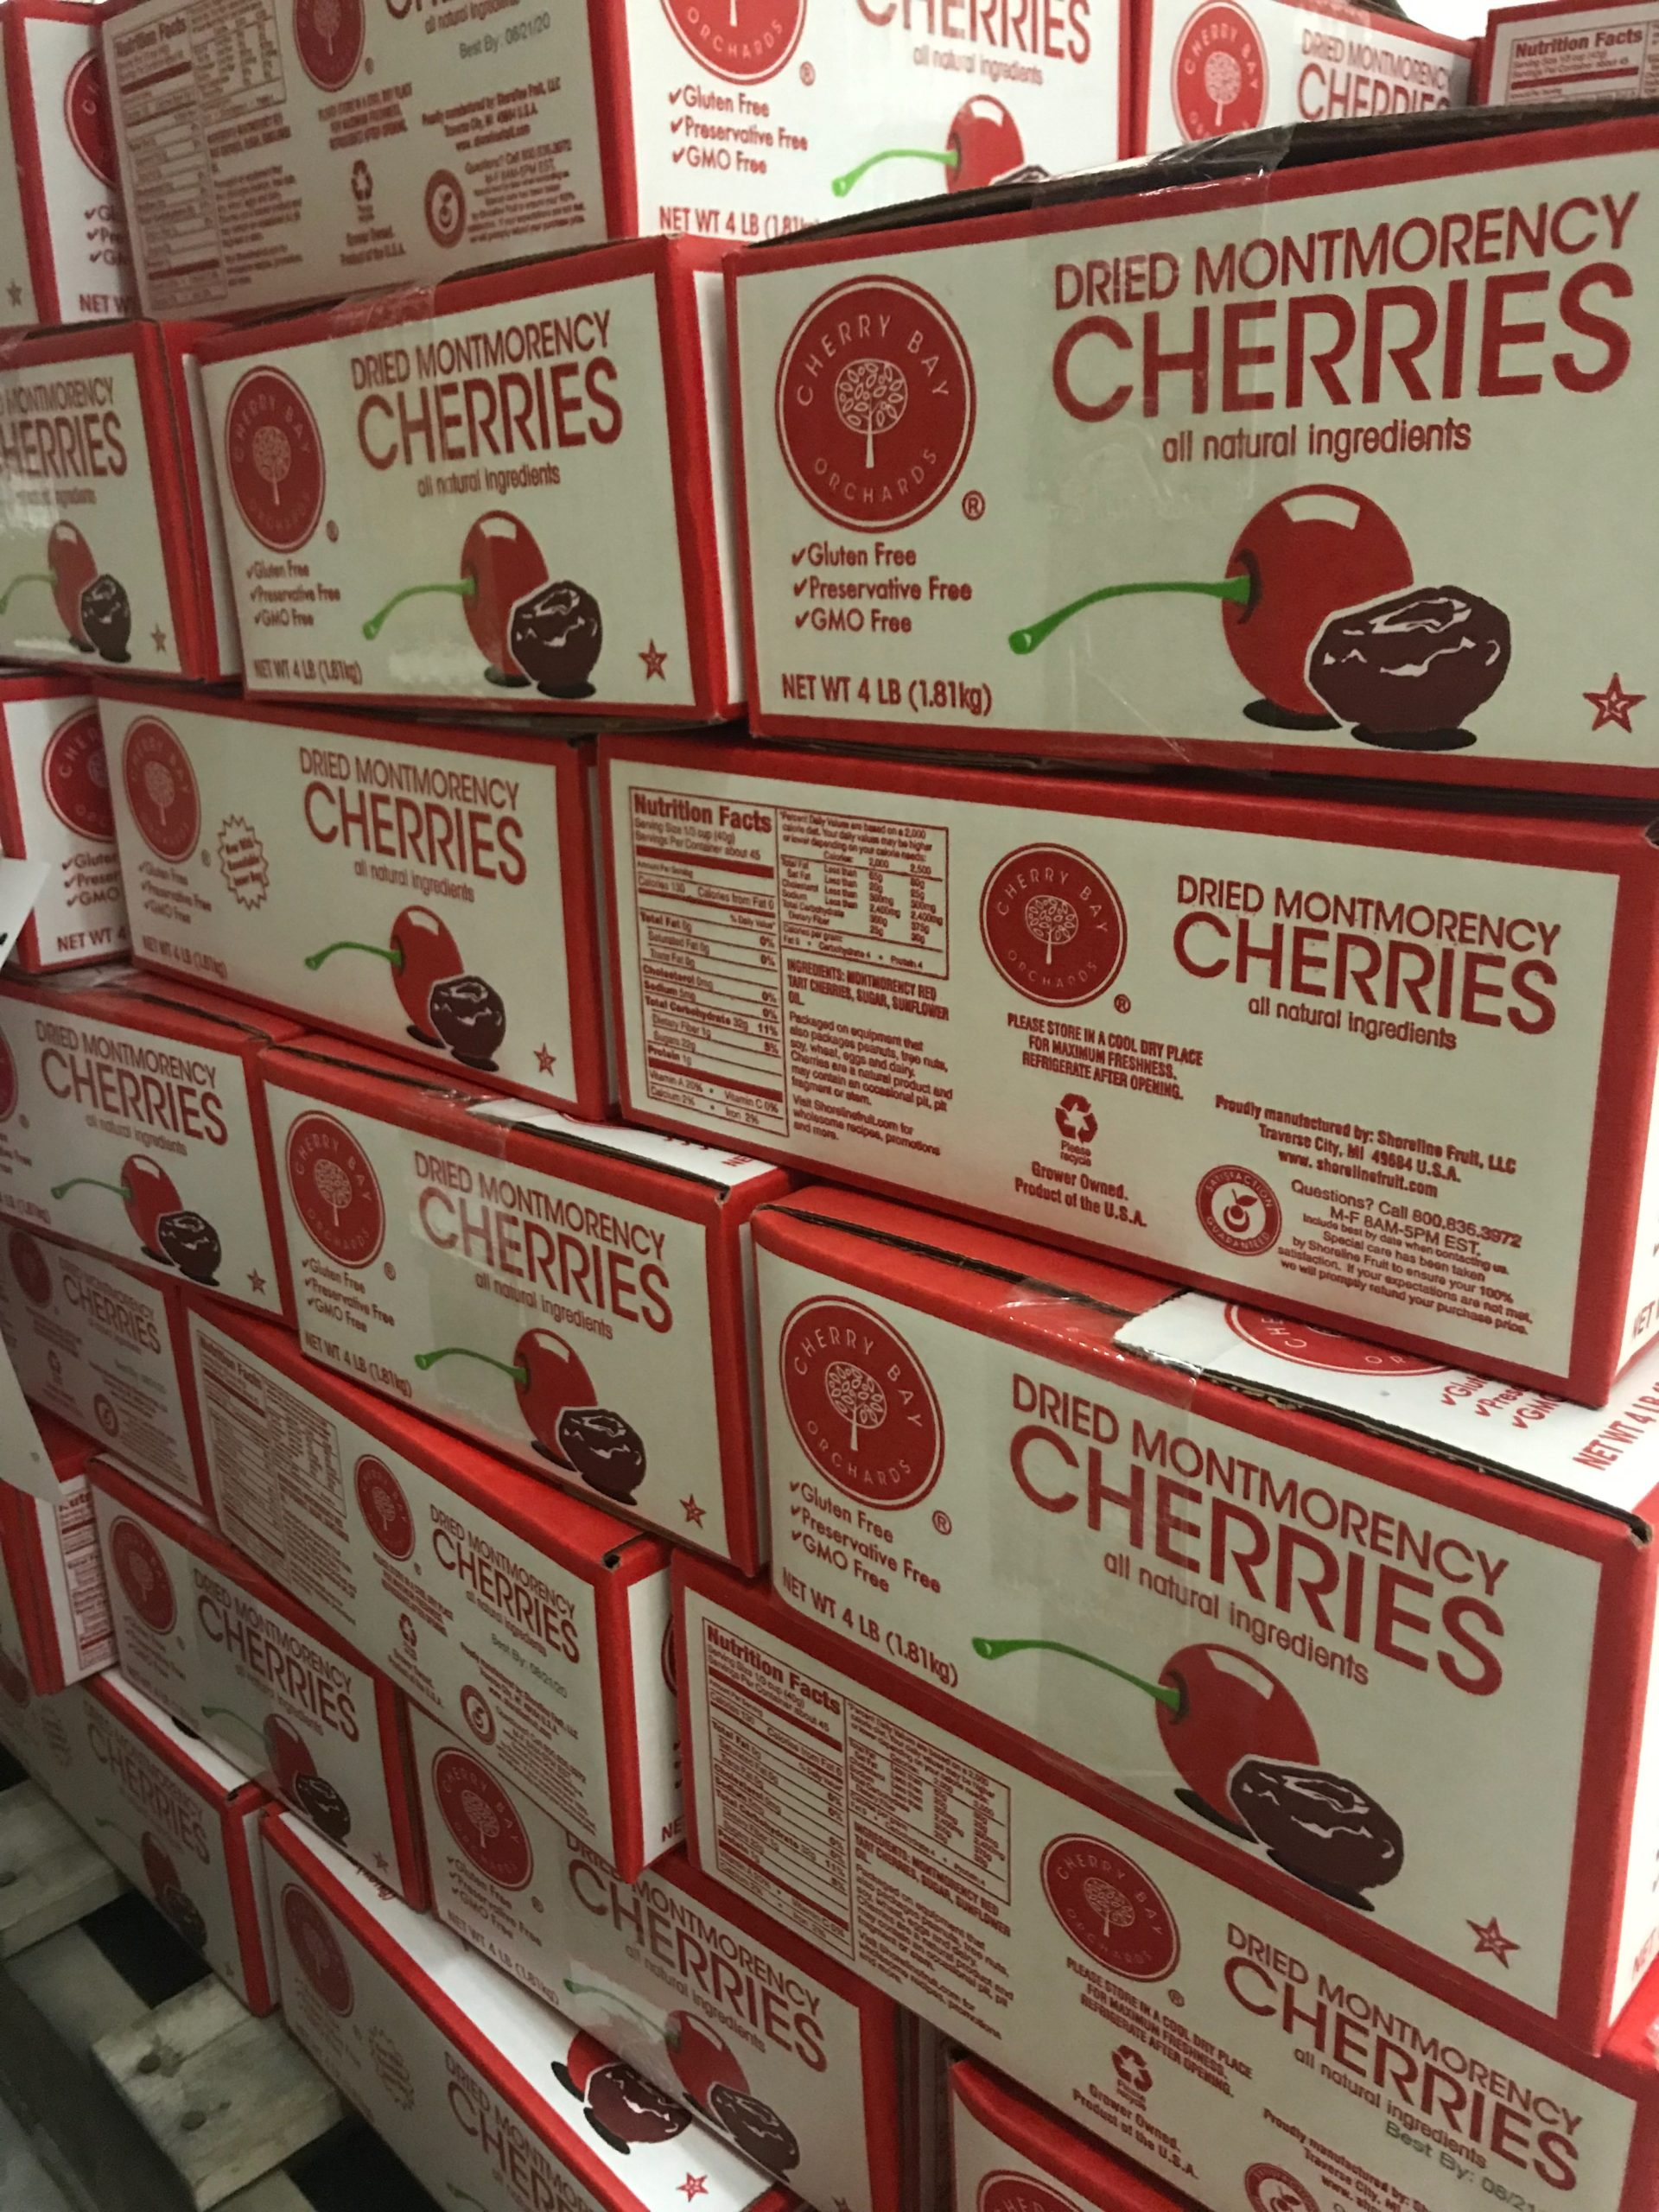 Fulfillment Success Story: Shoreline Fruit's Cherry Bay Orchards